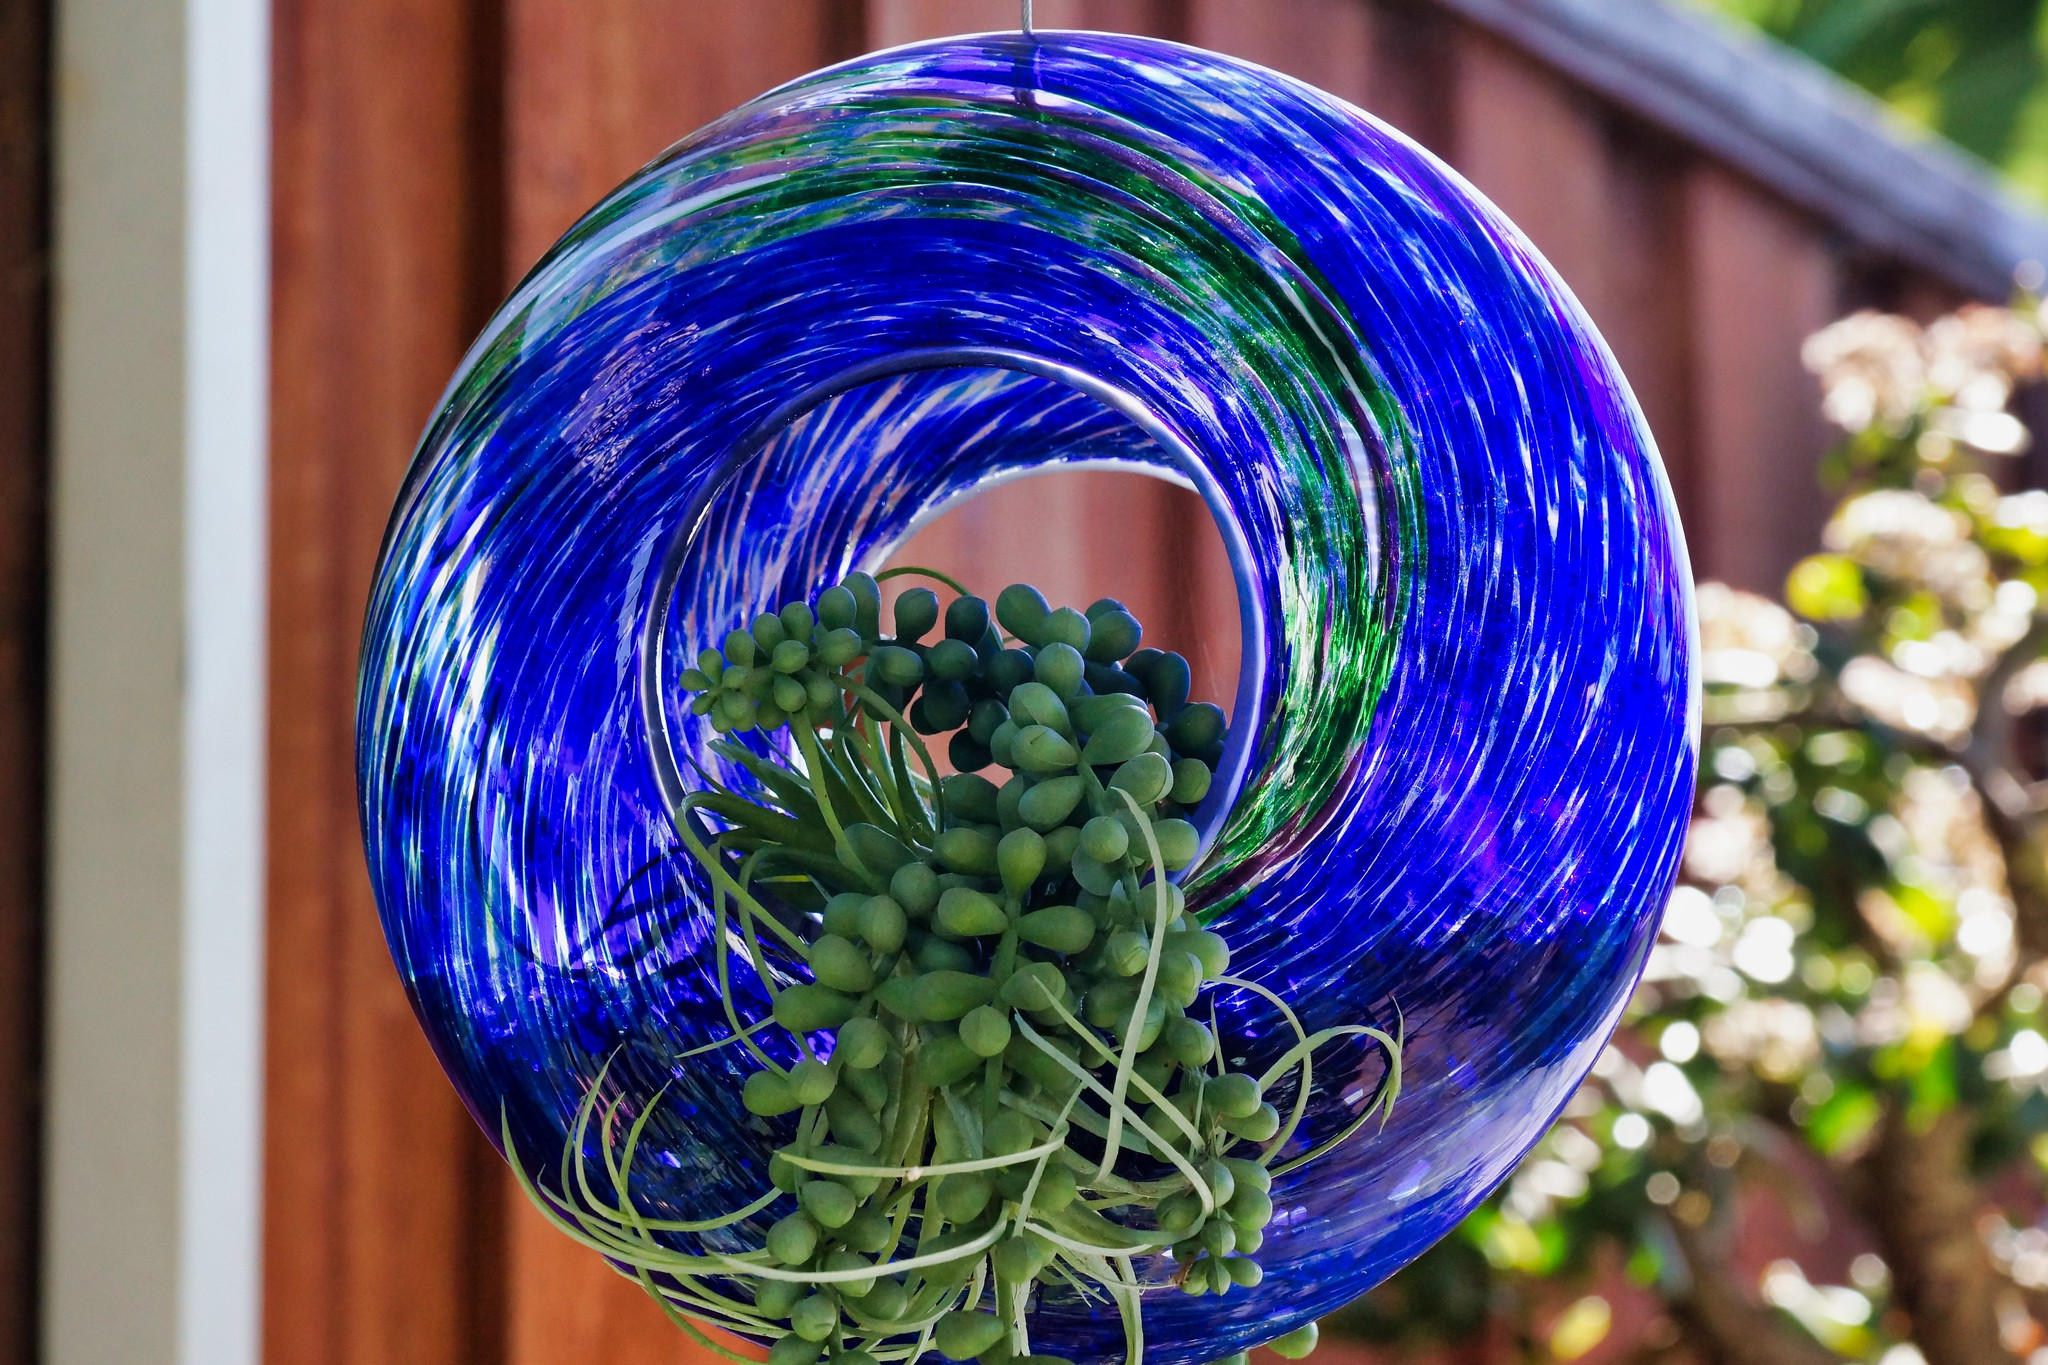 2019-02-06 - Nature Photography - Succulent - String-of-pearls